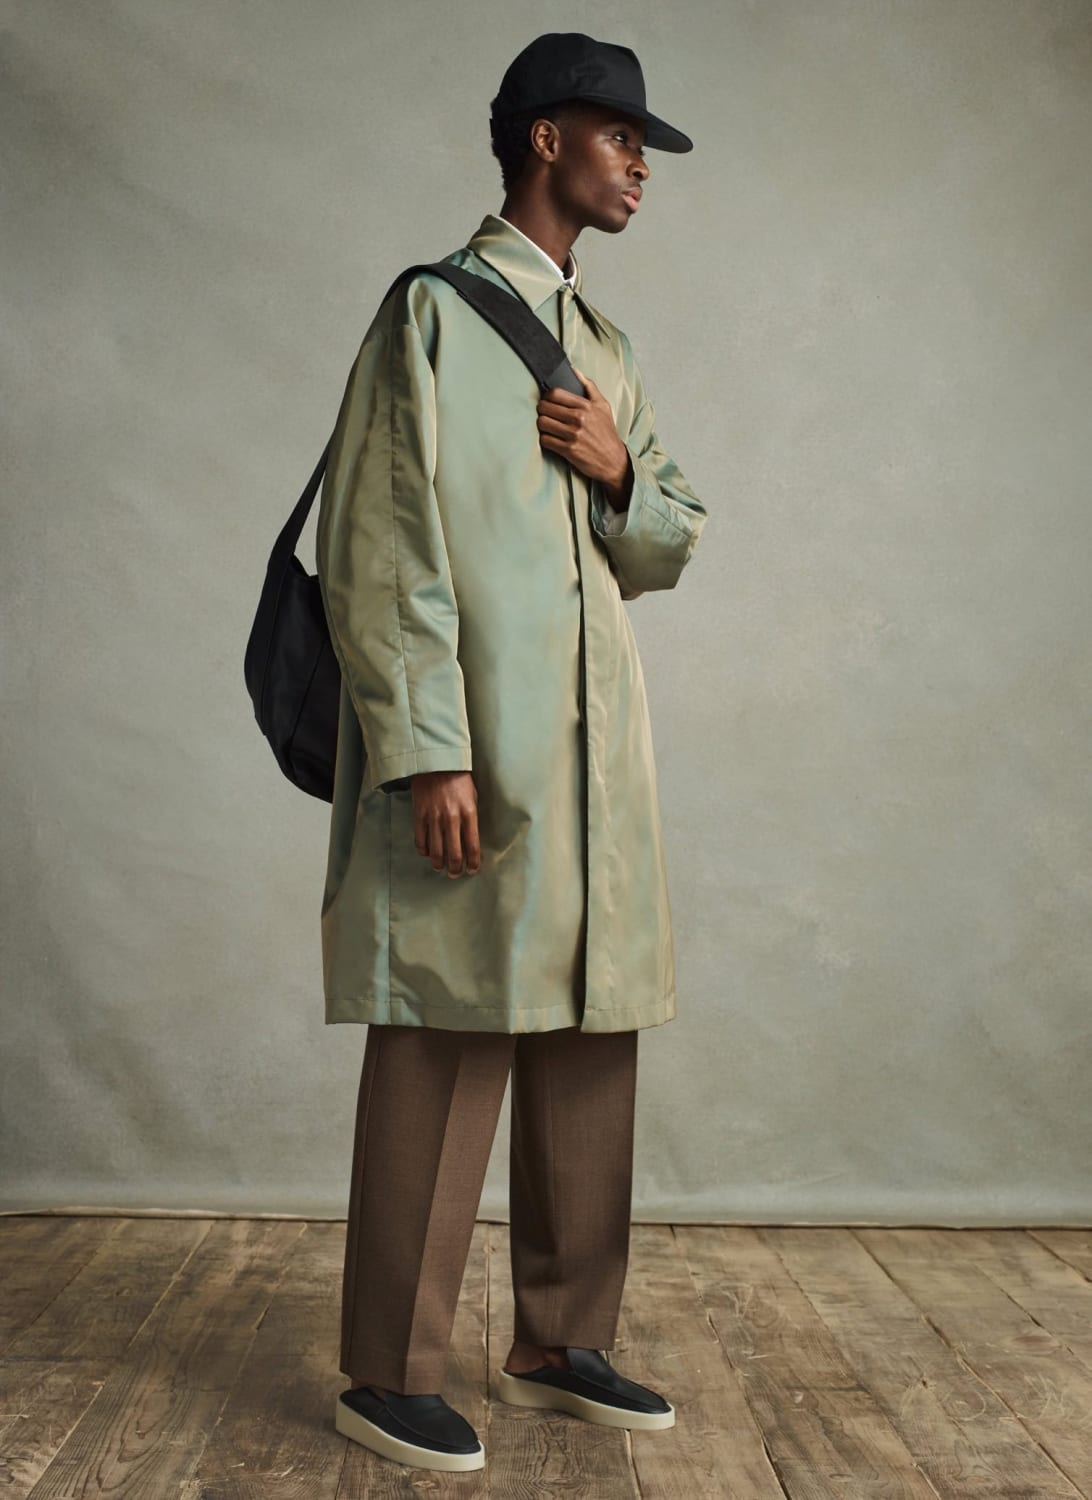 Seventh Collection Lookbook Look 58